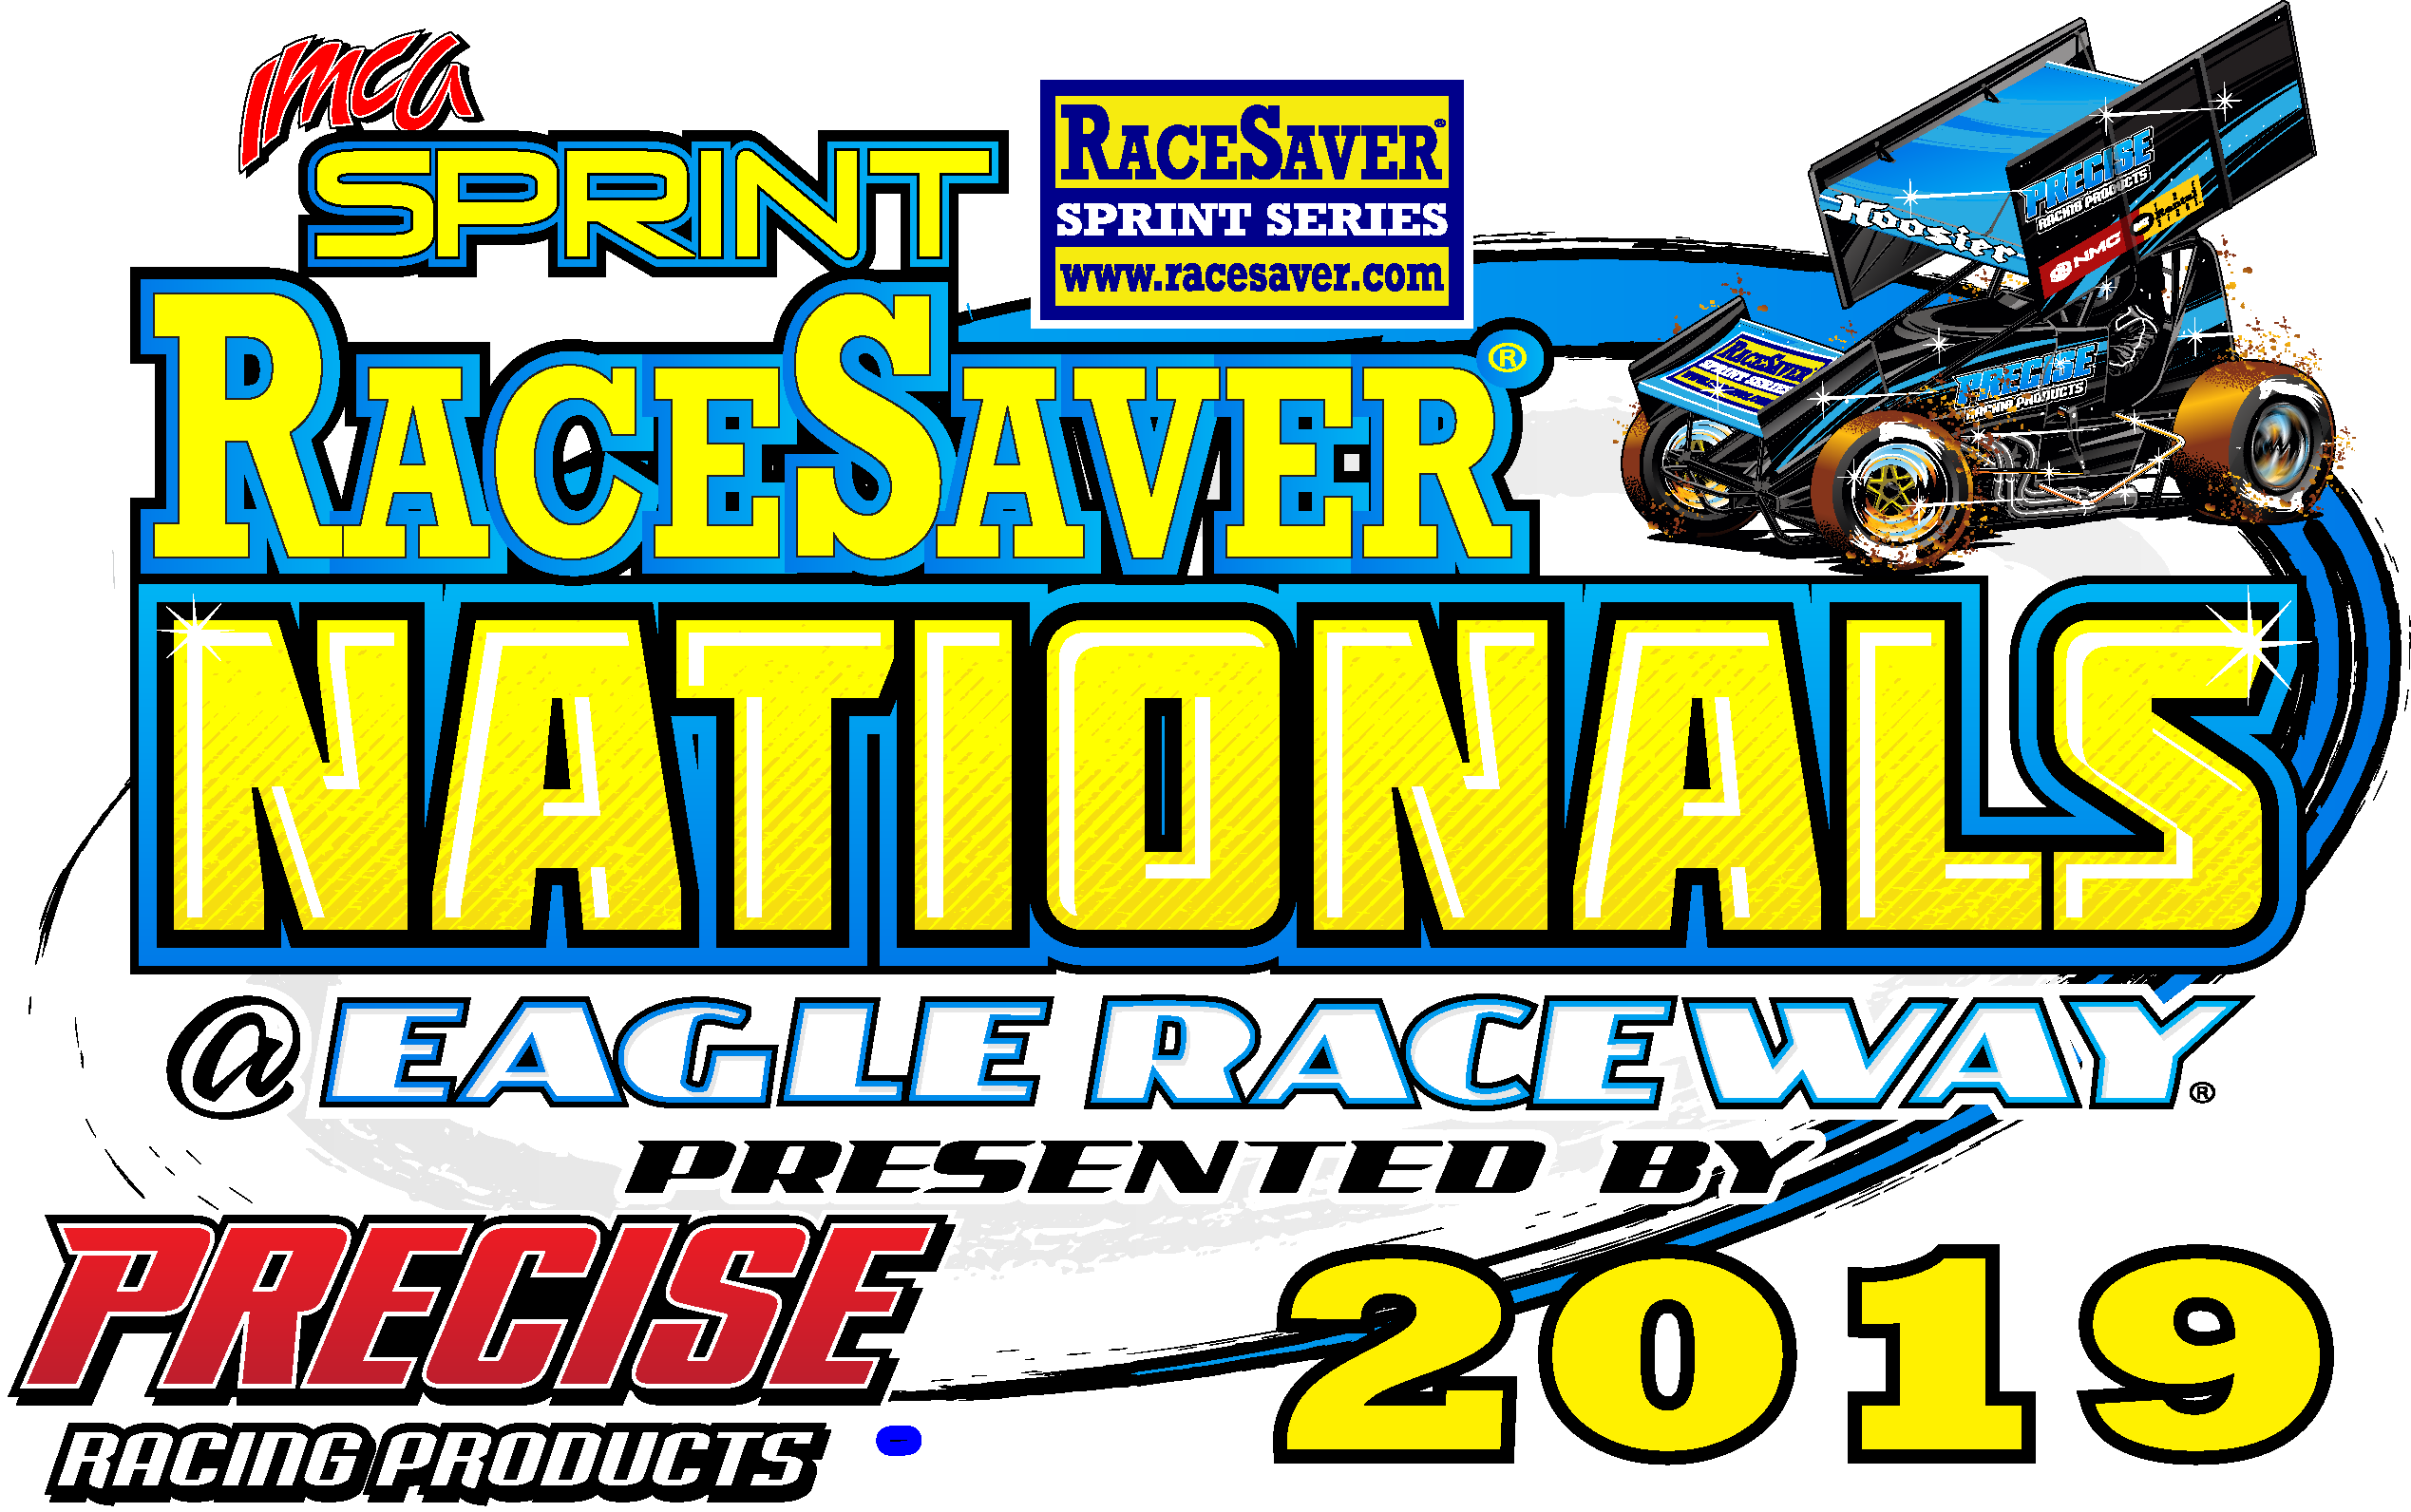 Lots of Sponsors add money to the Non-Qualifier purse for IMCA RaceSaver Nationals